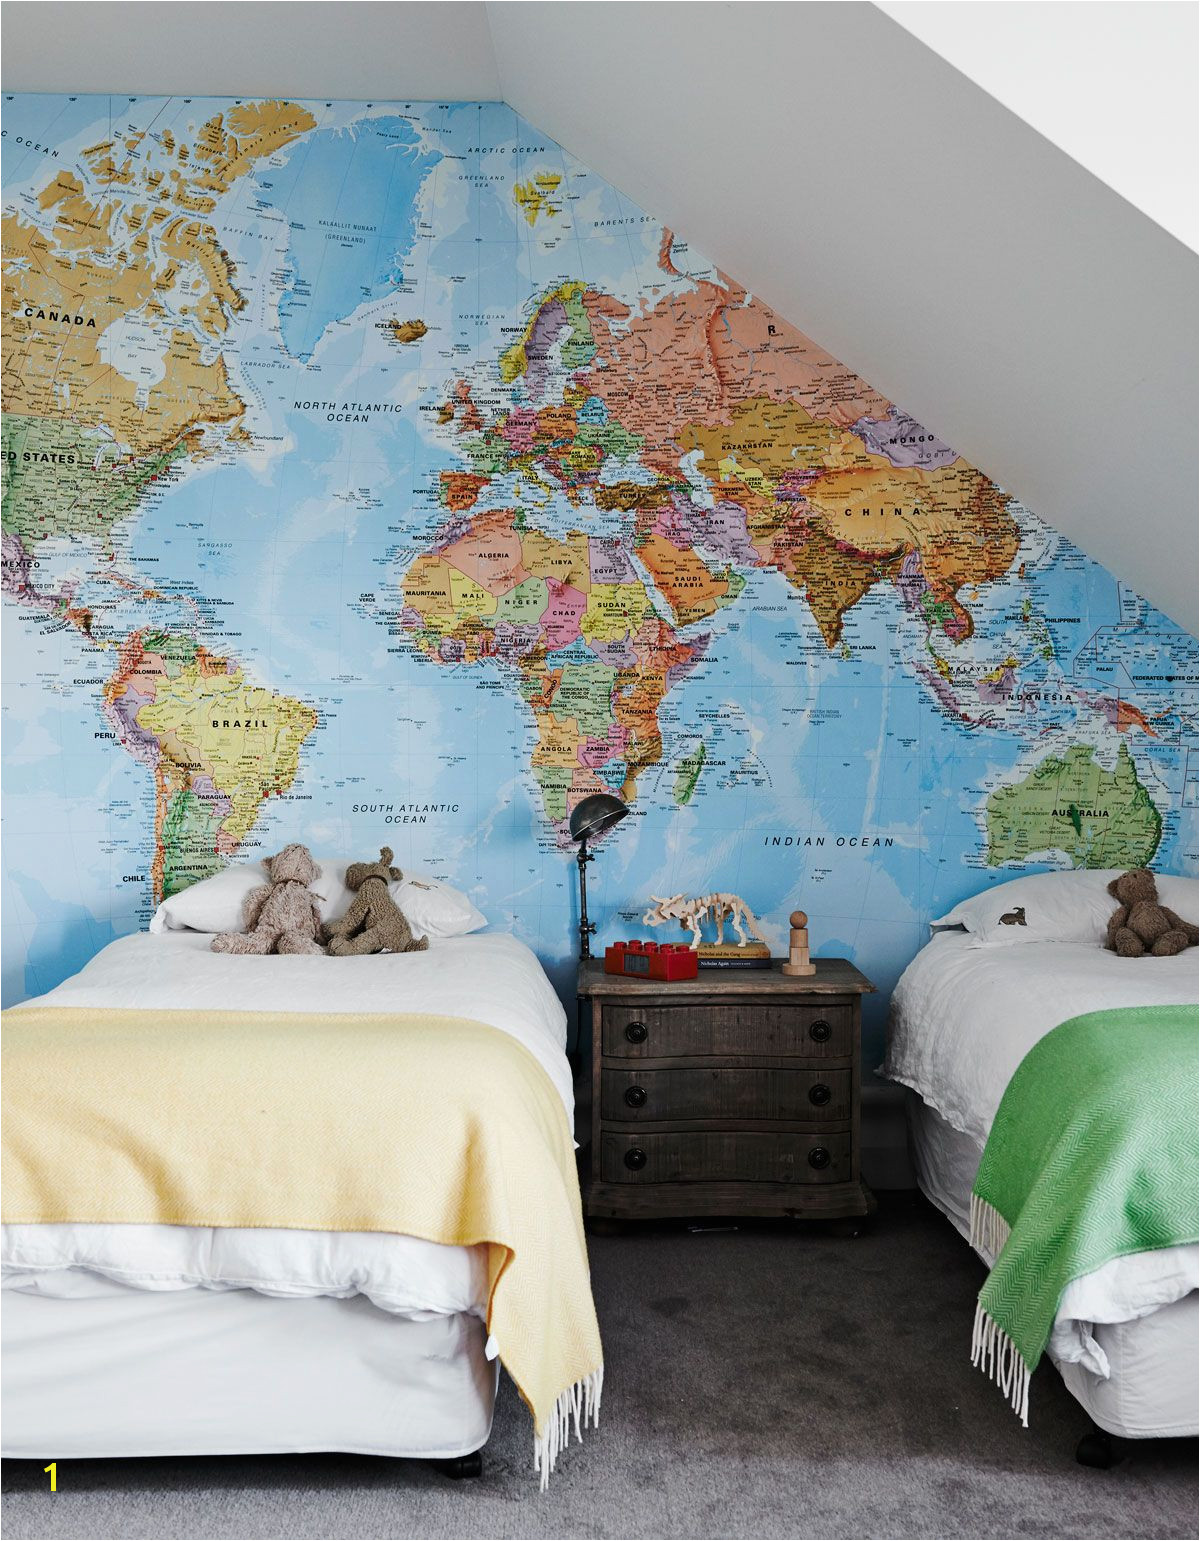 Dress your space with these creative map wallpaper map mural and map wall and window designs that will let you travel the world